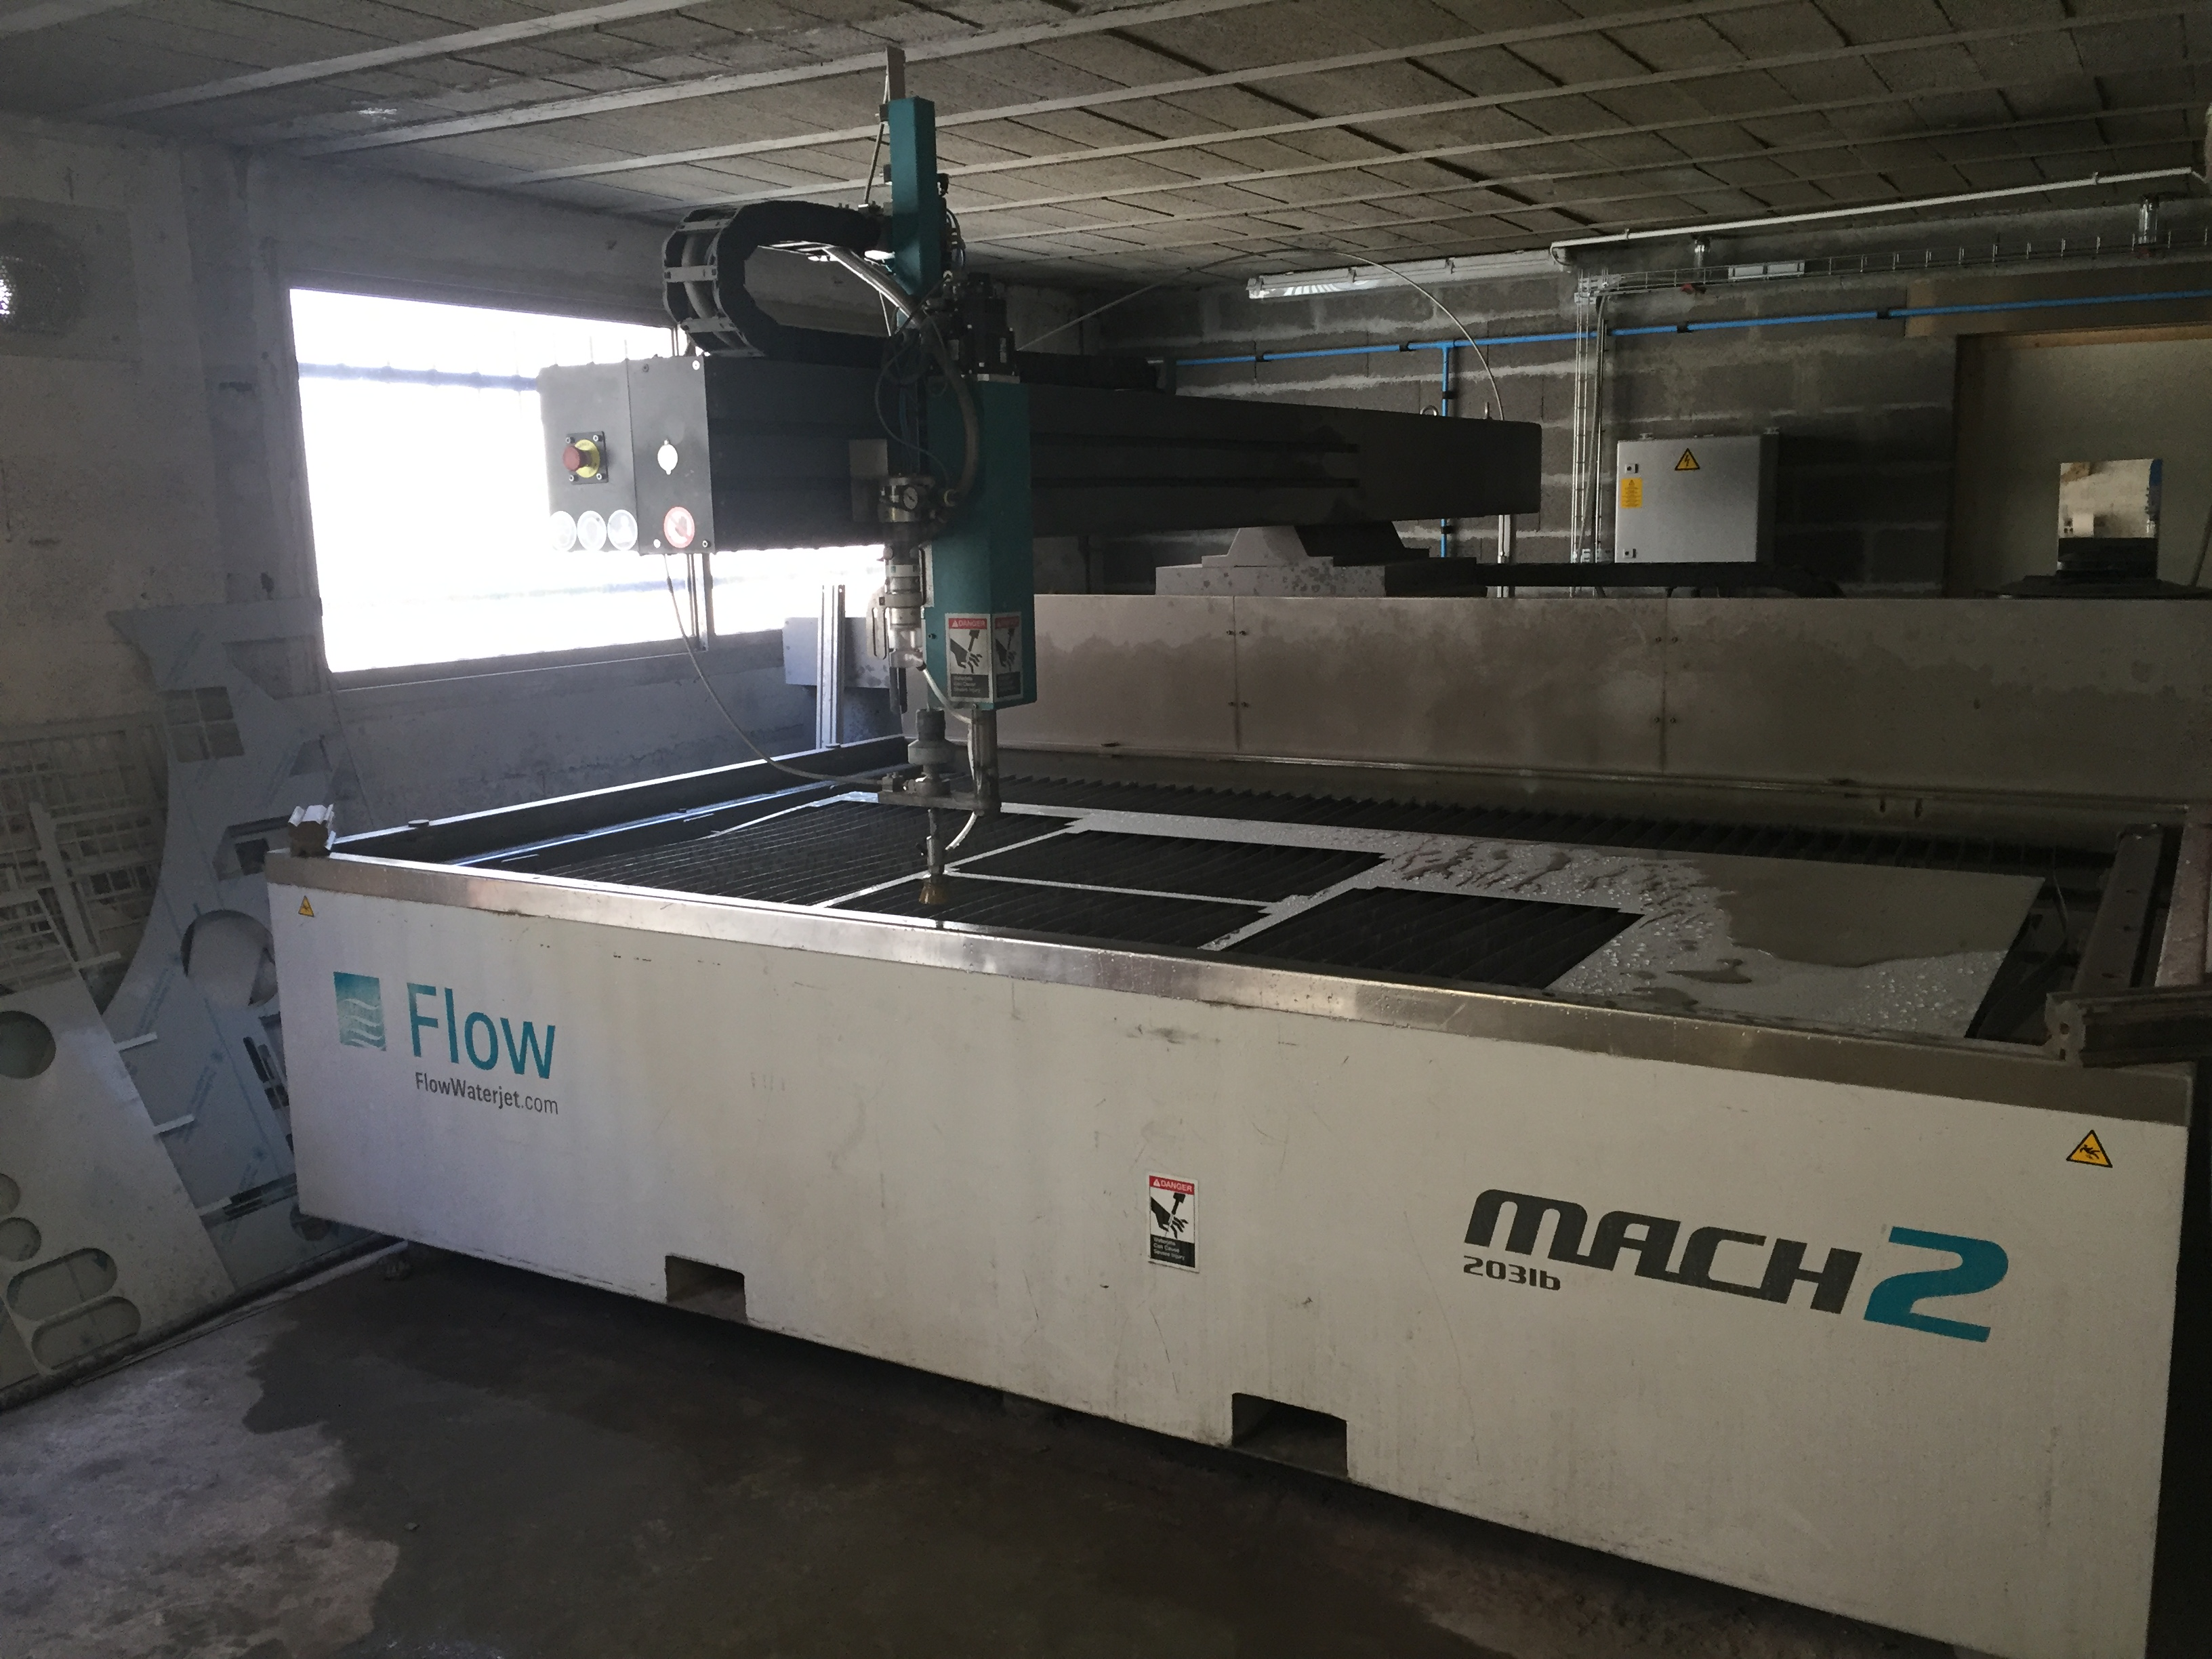 Flow Mach 2 waterjet cutting machine - Exapro